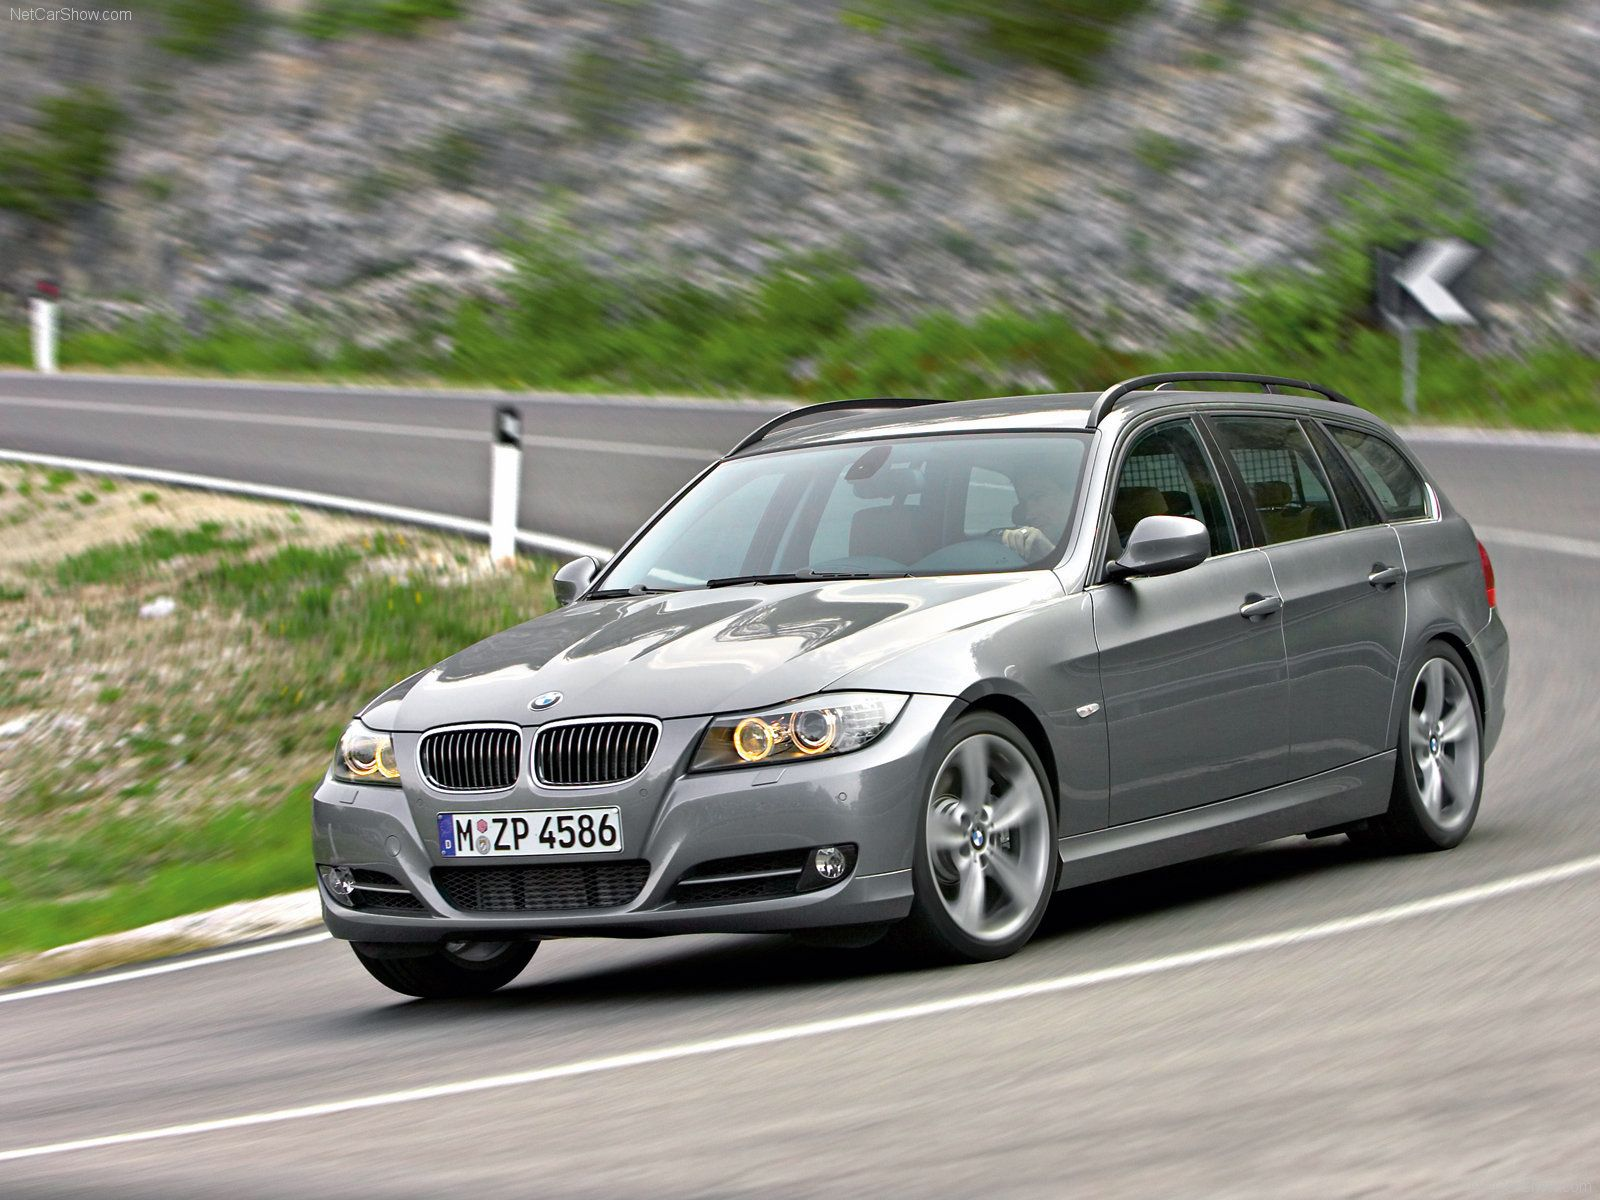 2005 BMW (E61) 530i Touring | /// BMW \\\ | Pinterest | BMW